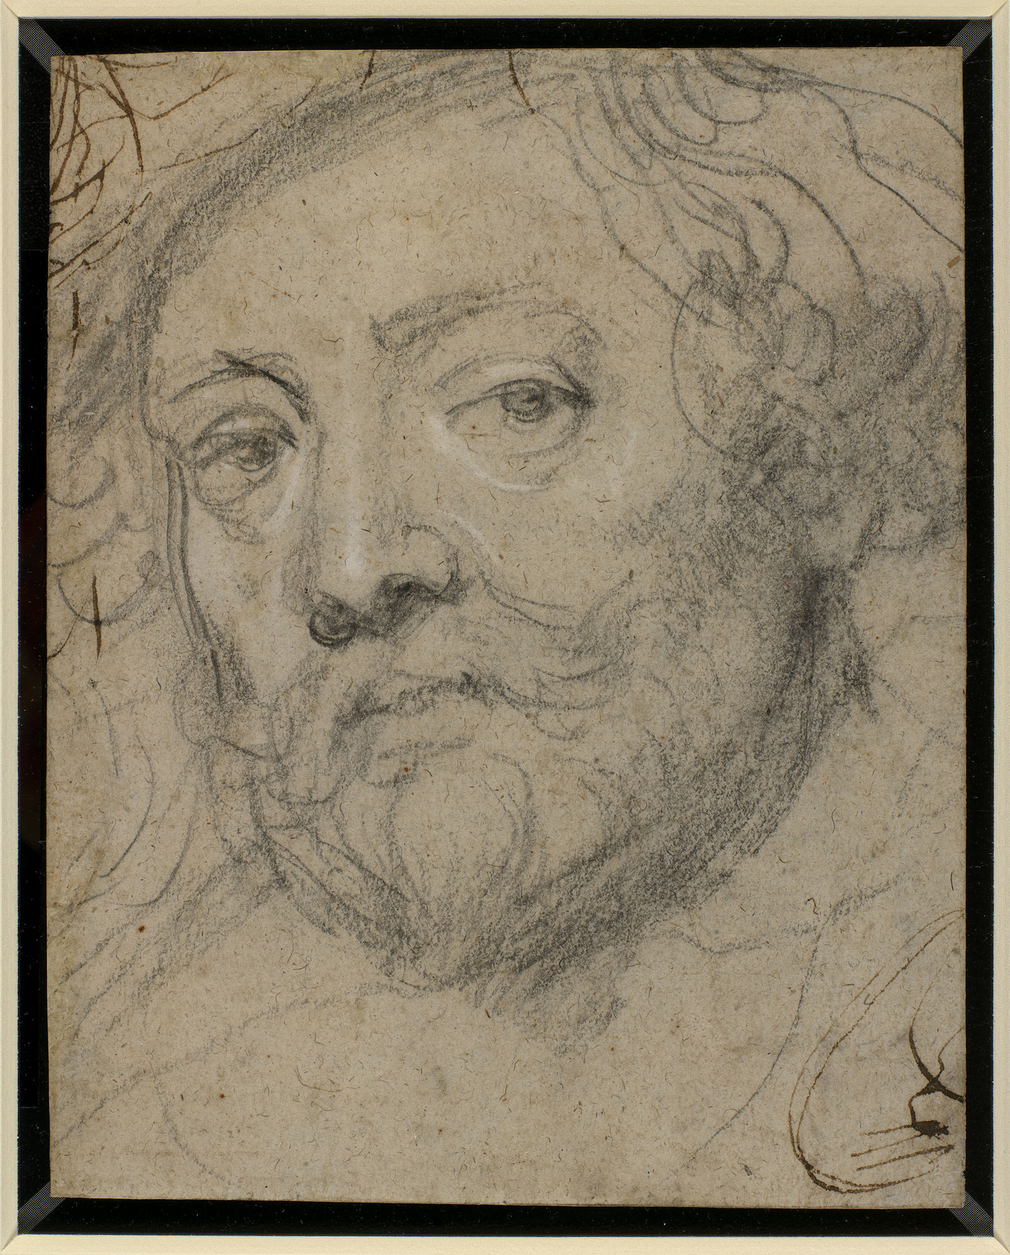 Recto: a self-portrait drawing of Sir Peter Paul Rubens; head only, tilted to the left, looking out at the viewer. Verso: a summary sketch of a seated couple embracing. This is connected with a drawing of Callisto and Jupiter, from a sheet of studies in t